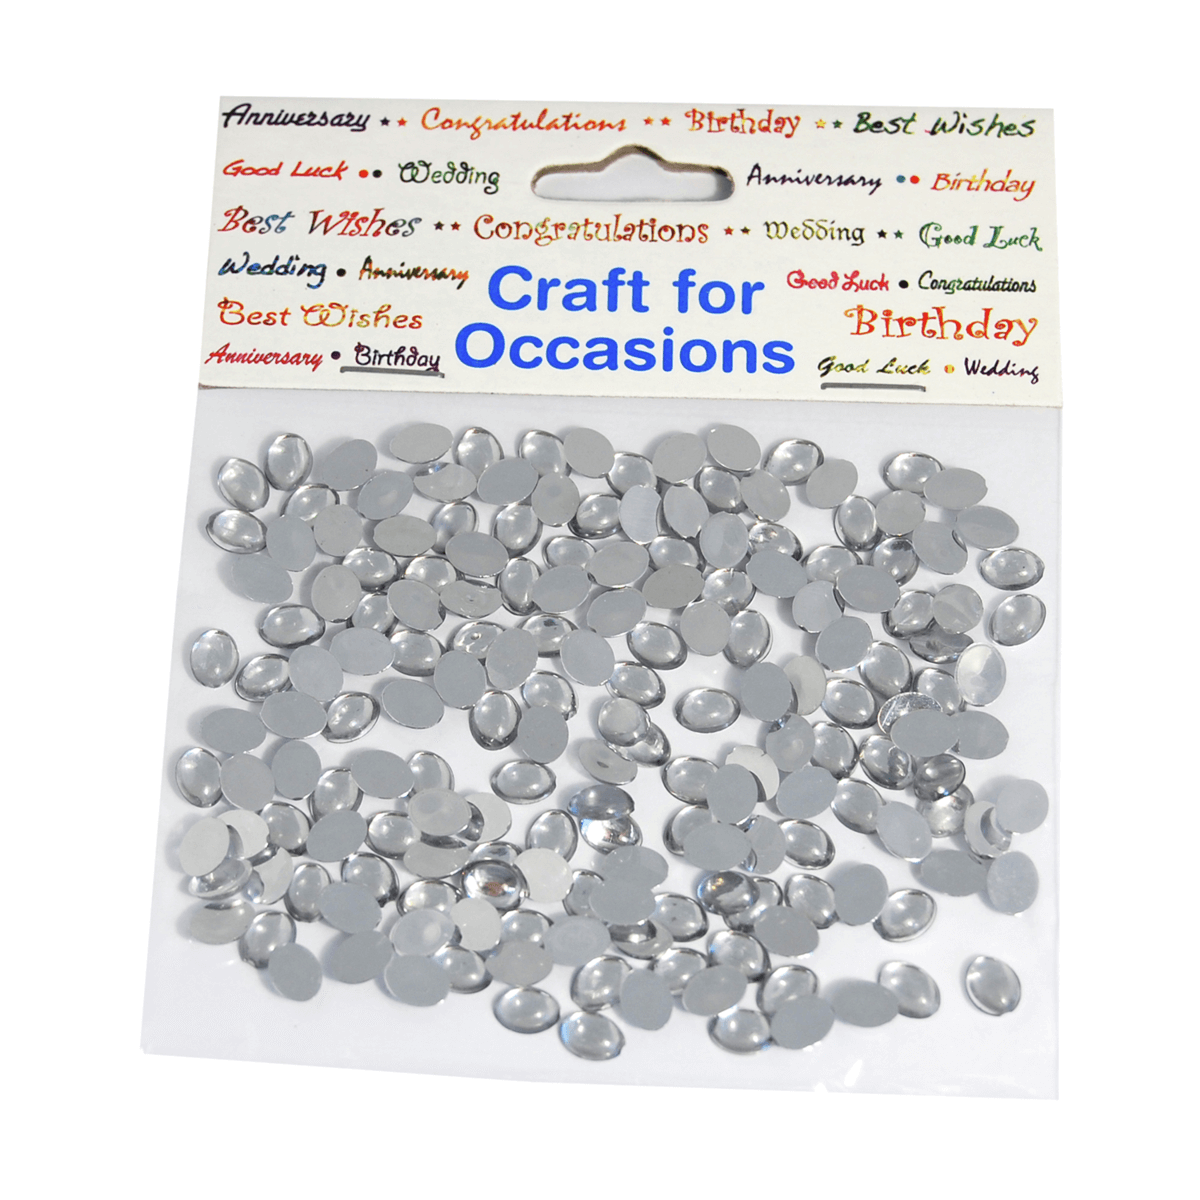 180 x Crystal Domes Oval Silver Craft Embellishments Cardmaking